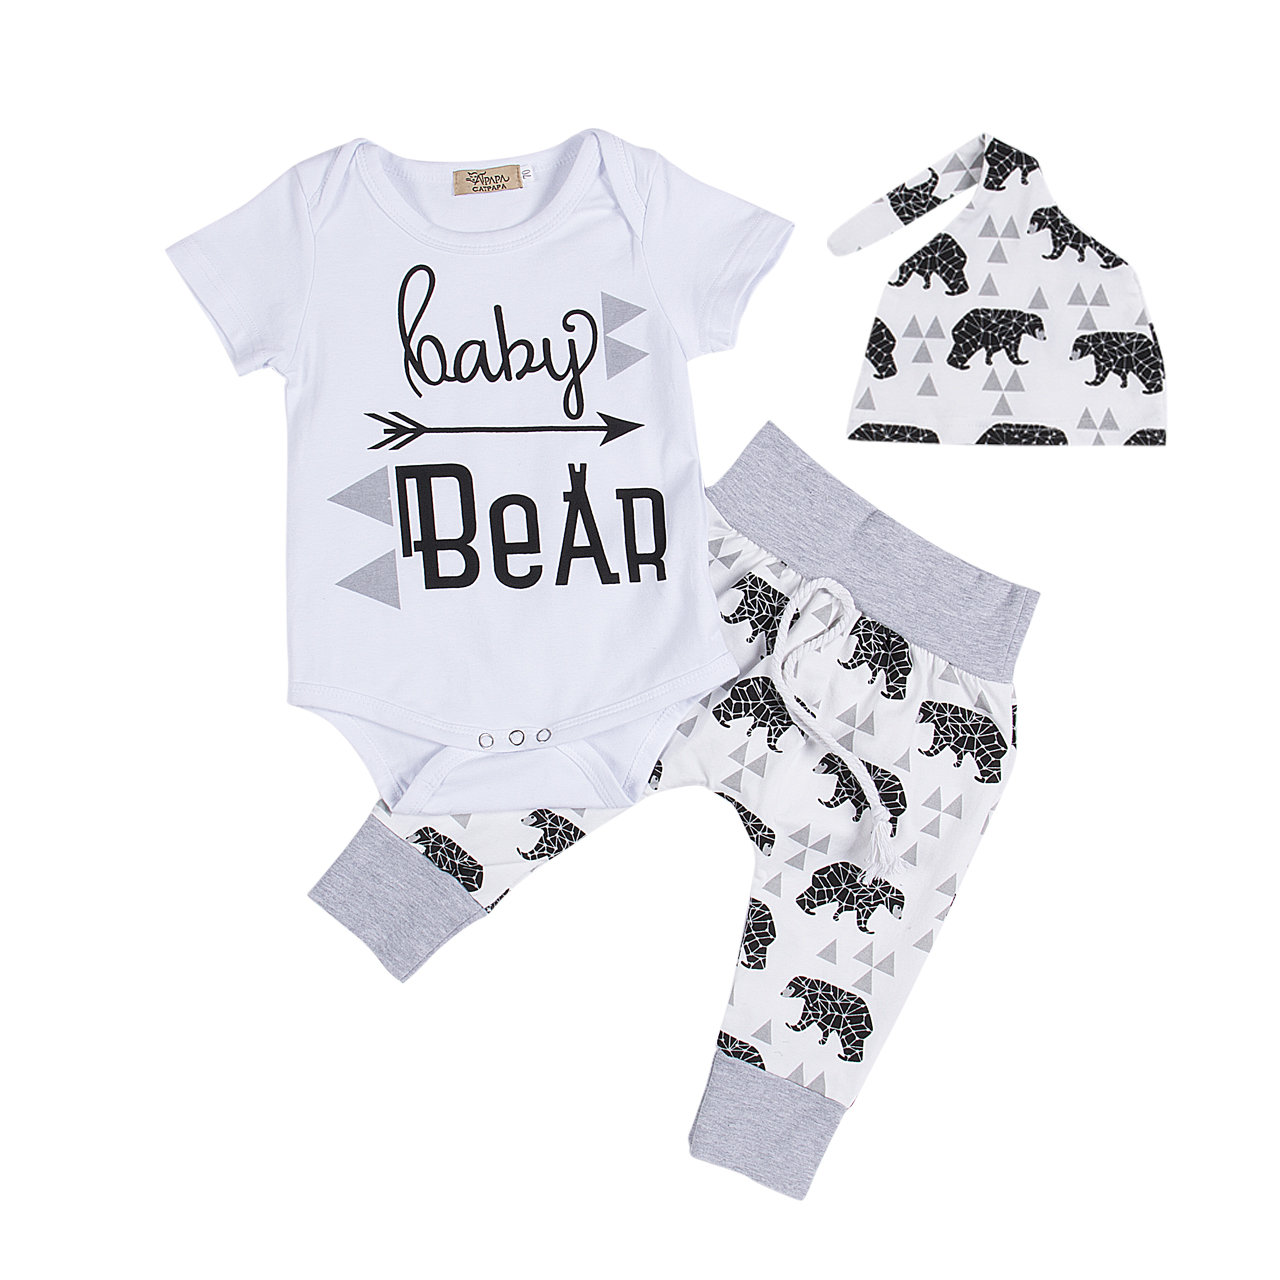 3PCS Set Newborn Infant Baby Clothes Short Sleeve Baby Bear Boys Girls Romper Pant Hat Outfit Bebek Giyim Clothing Costume 2017 hot newborn infant baby boy girl clothes love heart bodysuit romper pant hat 3pcs outfit autumn suit clothing set